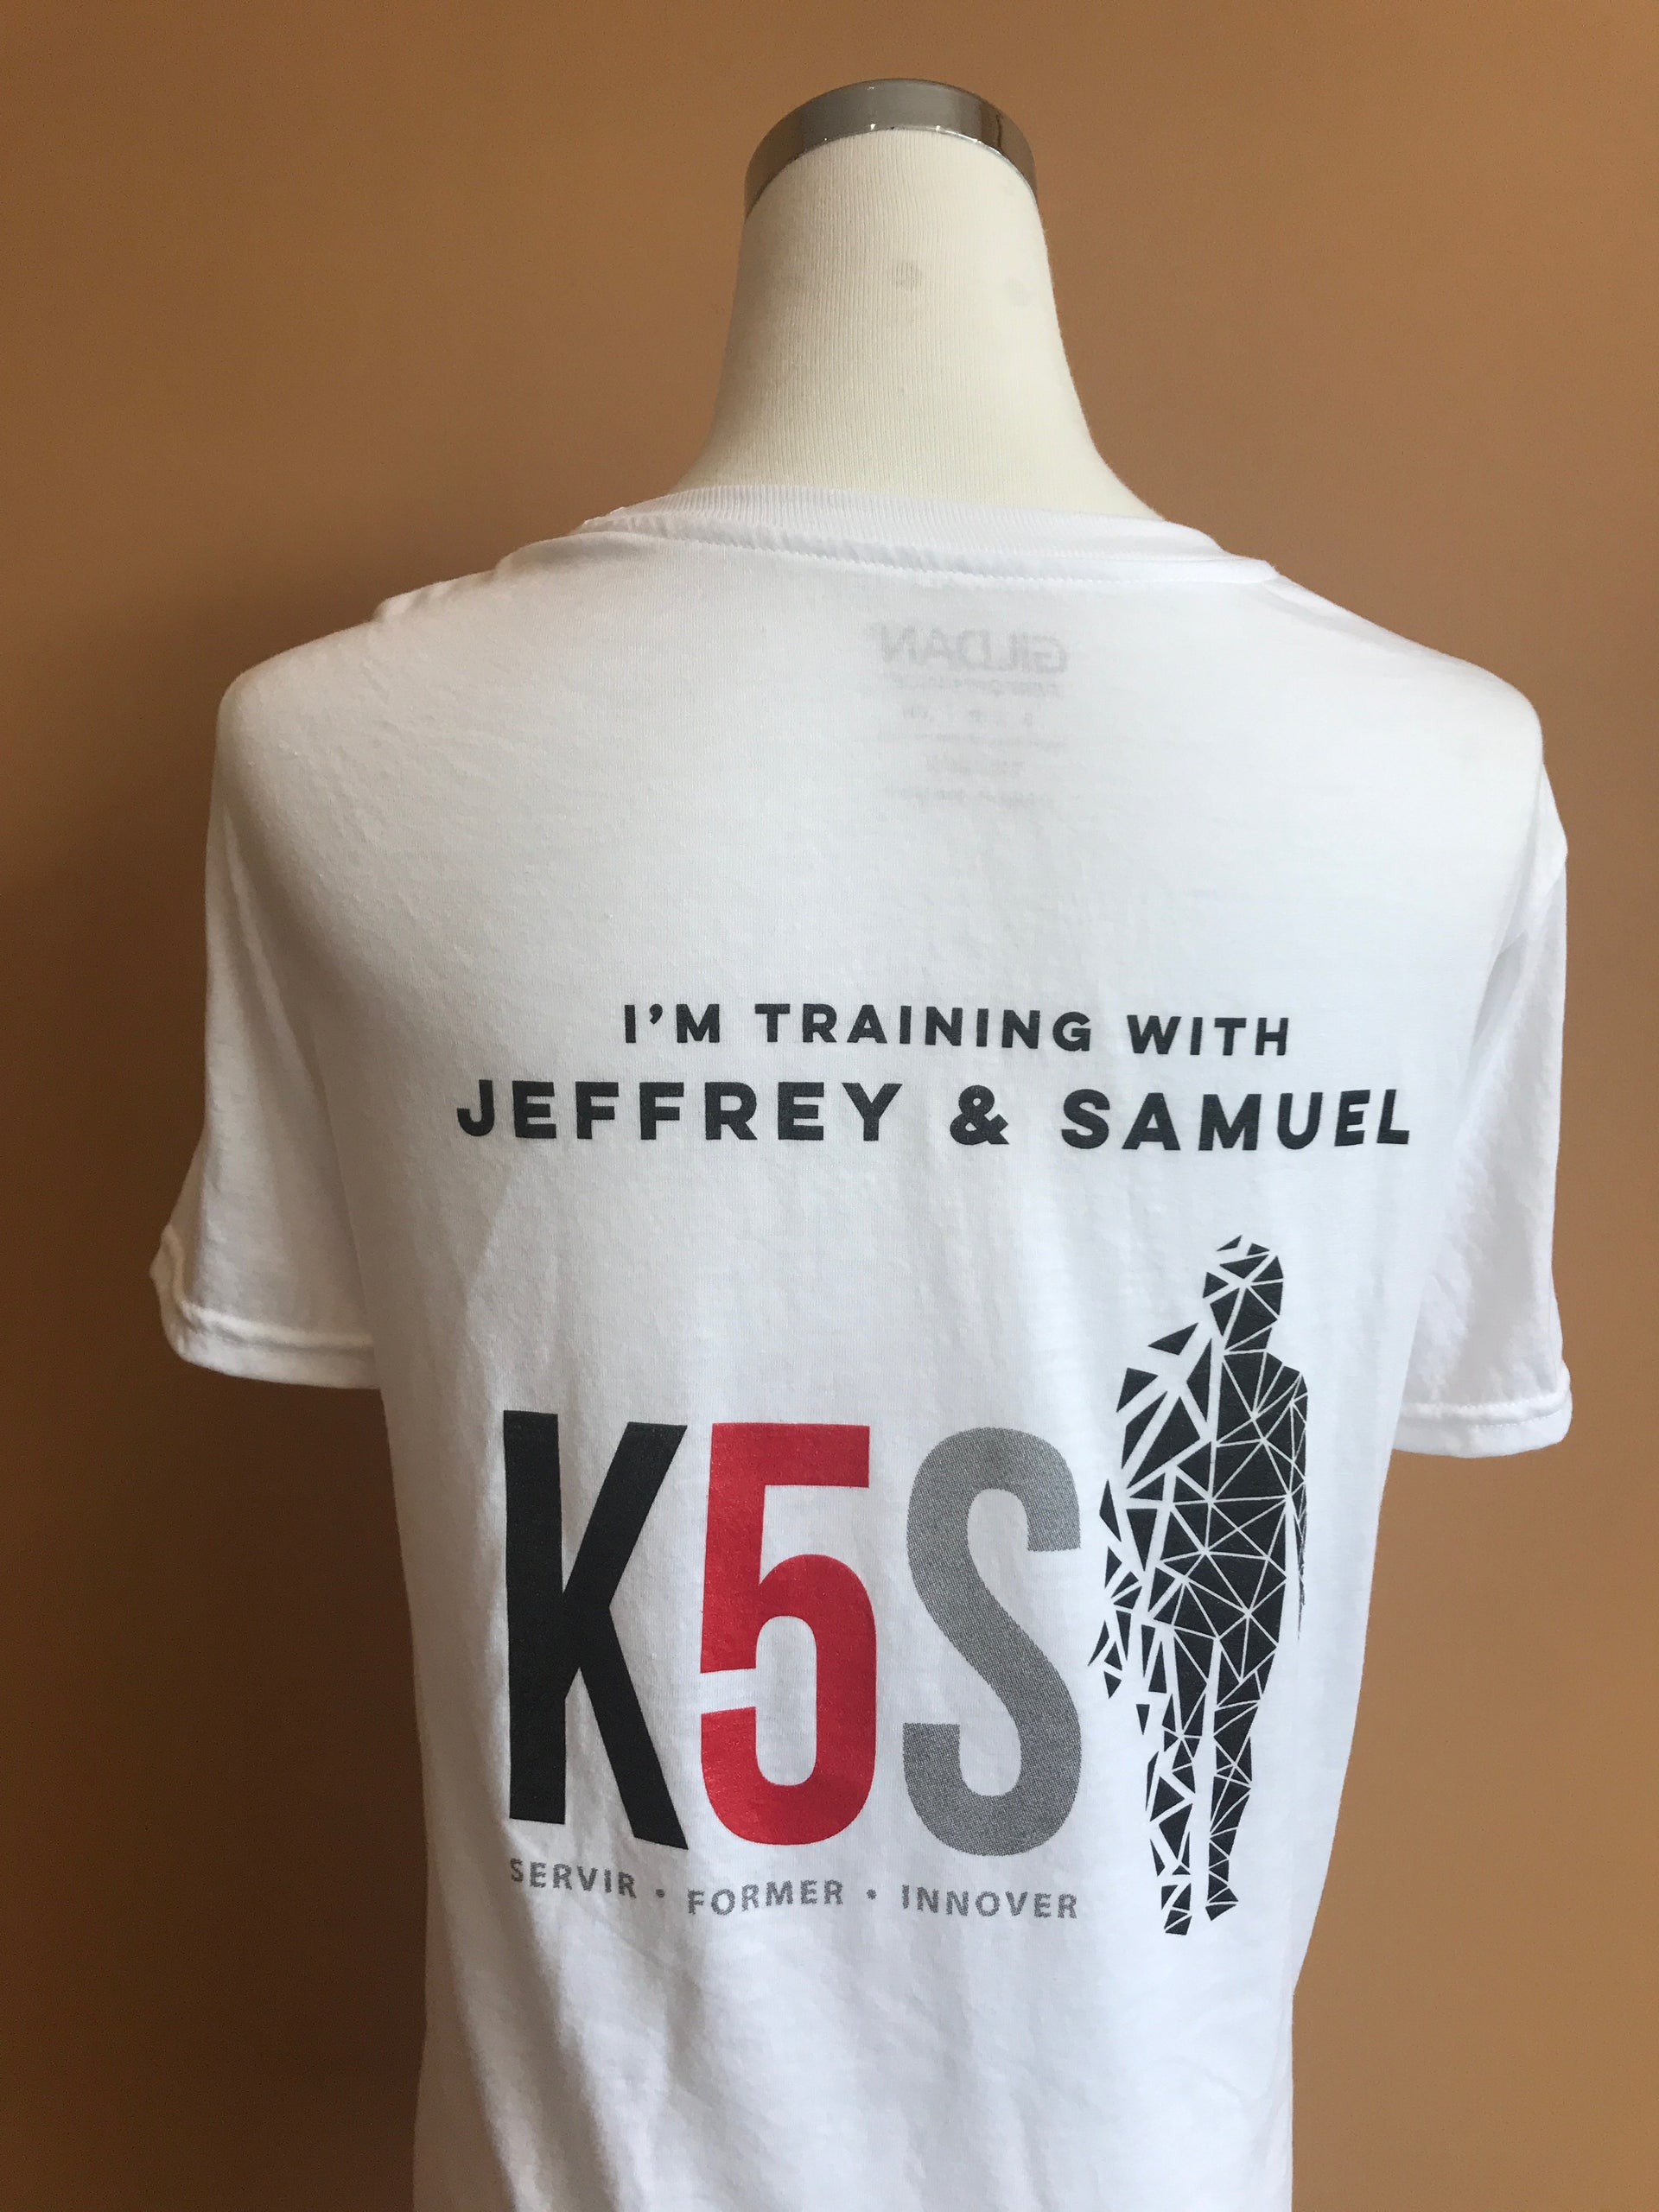 Le Tour de Jeffrey: 'Support Jeffrey' T-Shirts